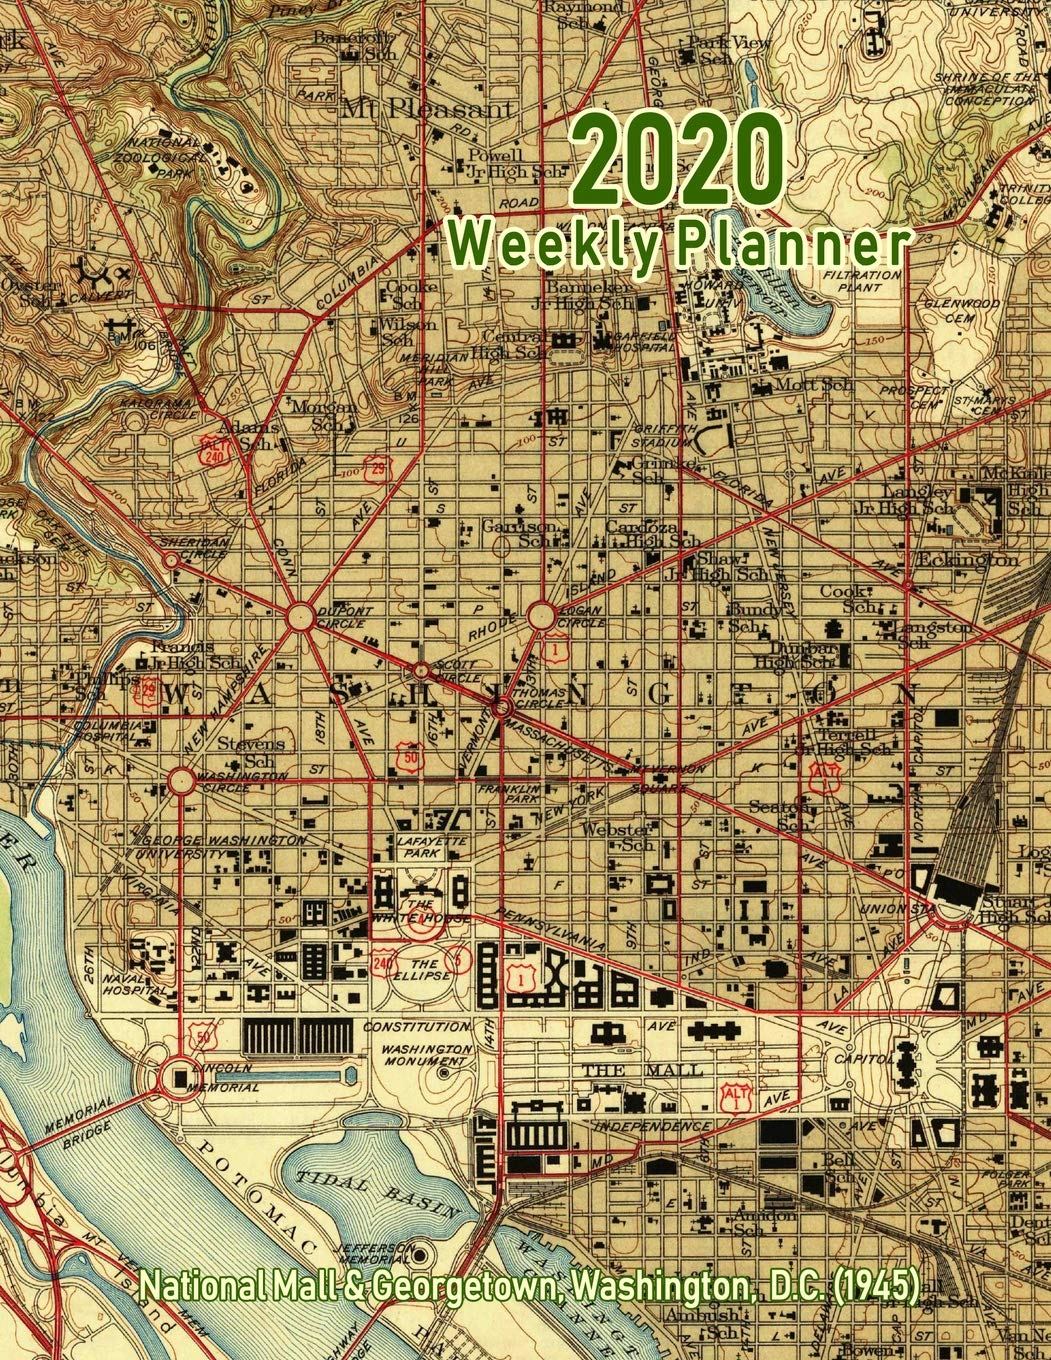 Amazon.com: 2020 Weekly Planner: National Mall & Georgetown ... on dc rock creek park map, dc penn quarter map, dc verizon center map, dc monuments map to print, dc pentagon map, dc cherry blossom festival map, dc metro map, dc capitol hill map, wash dc mall area map, dc federal triangle map, dc providence hospital map, dc united states map, dc national zoo map, brochure of dc attractions map, dc nationals stadium map, dc foggy bottom map, dc mall map museums, dc cleveland park map, dc capitol building map, dc union station map,